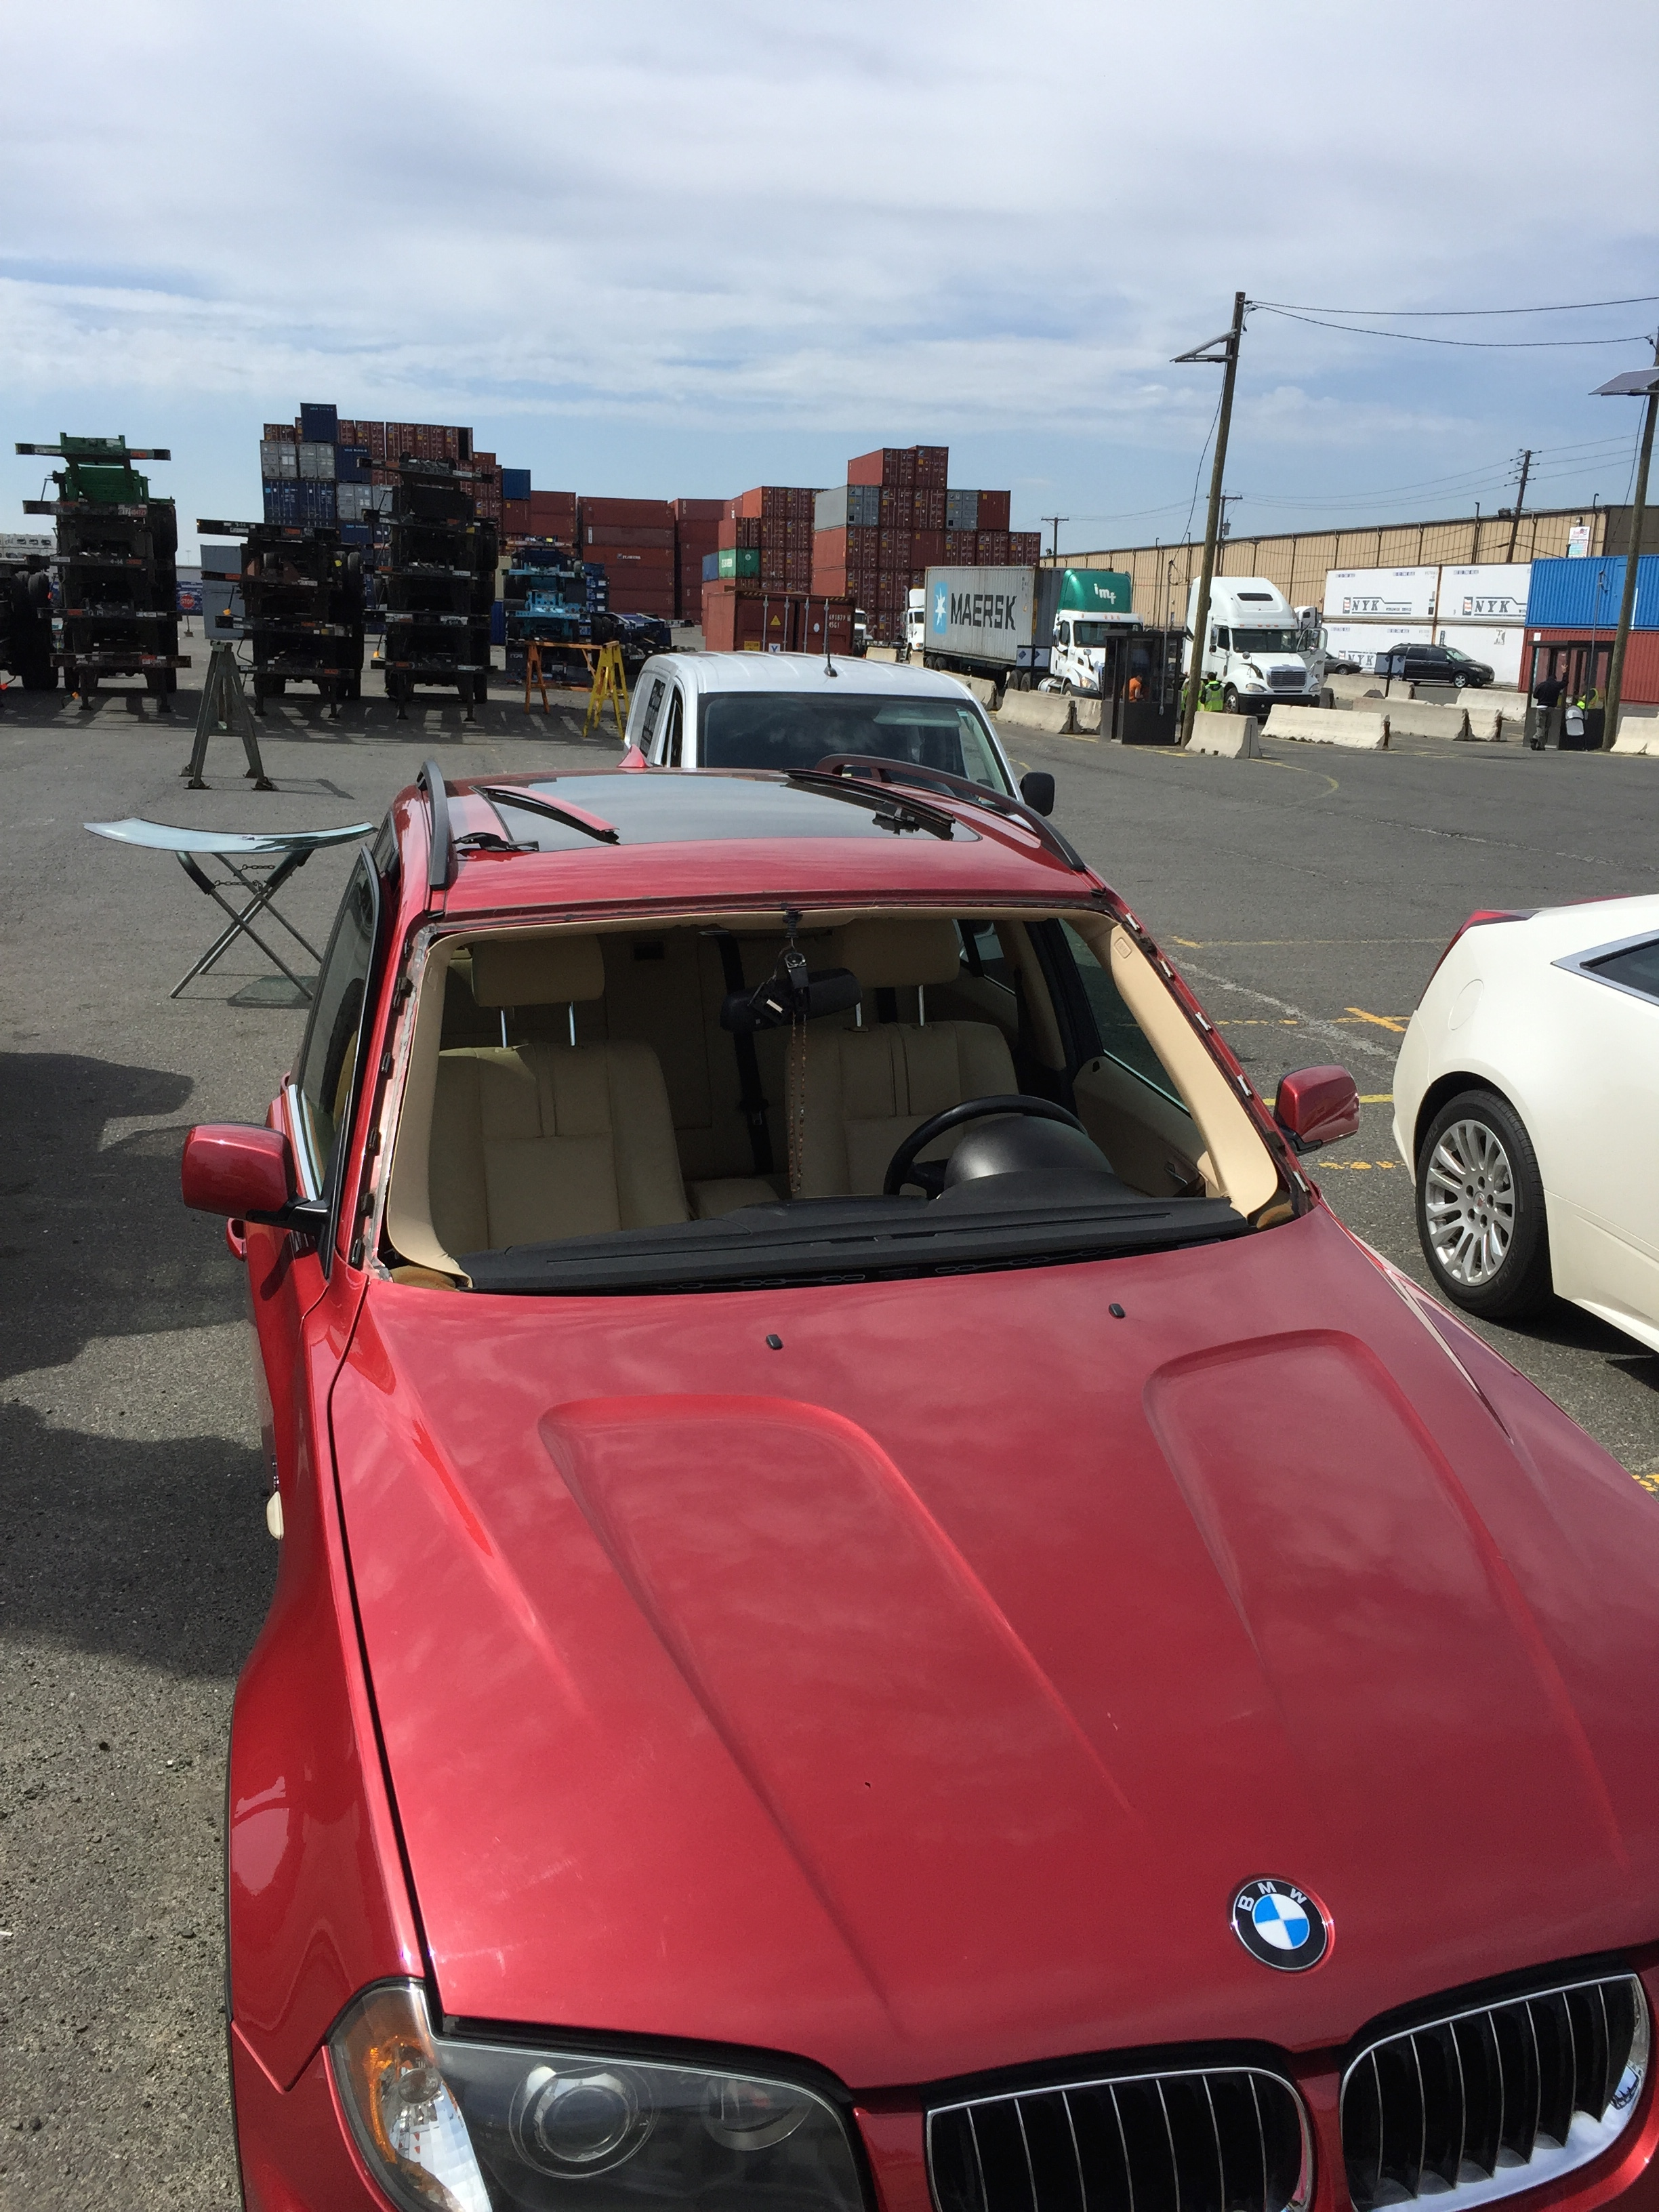 2013 BMW X3 windshield replacement  getting ready of install Platinum Auto Glass NJ @732-993-6844@platinumautoglassnj